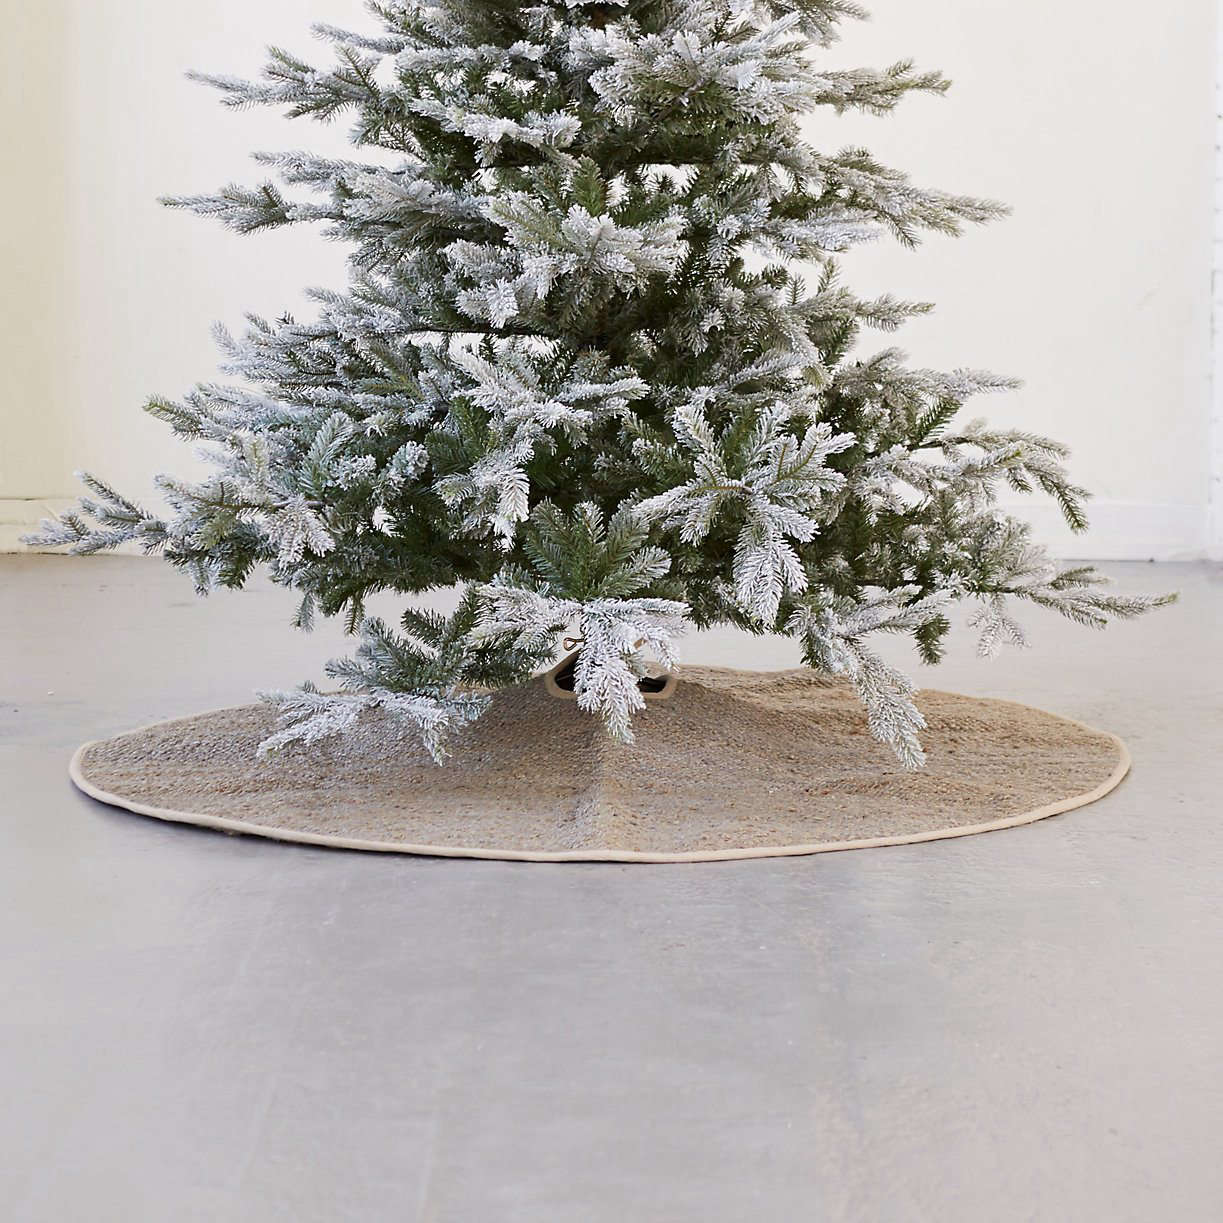 The Woven Jute Tree Skirt is $128 from Terrain.